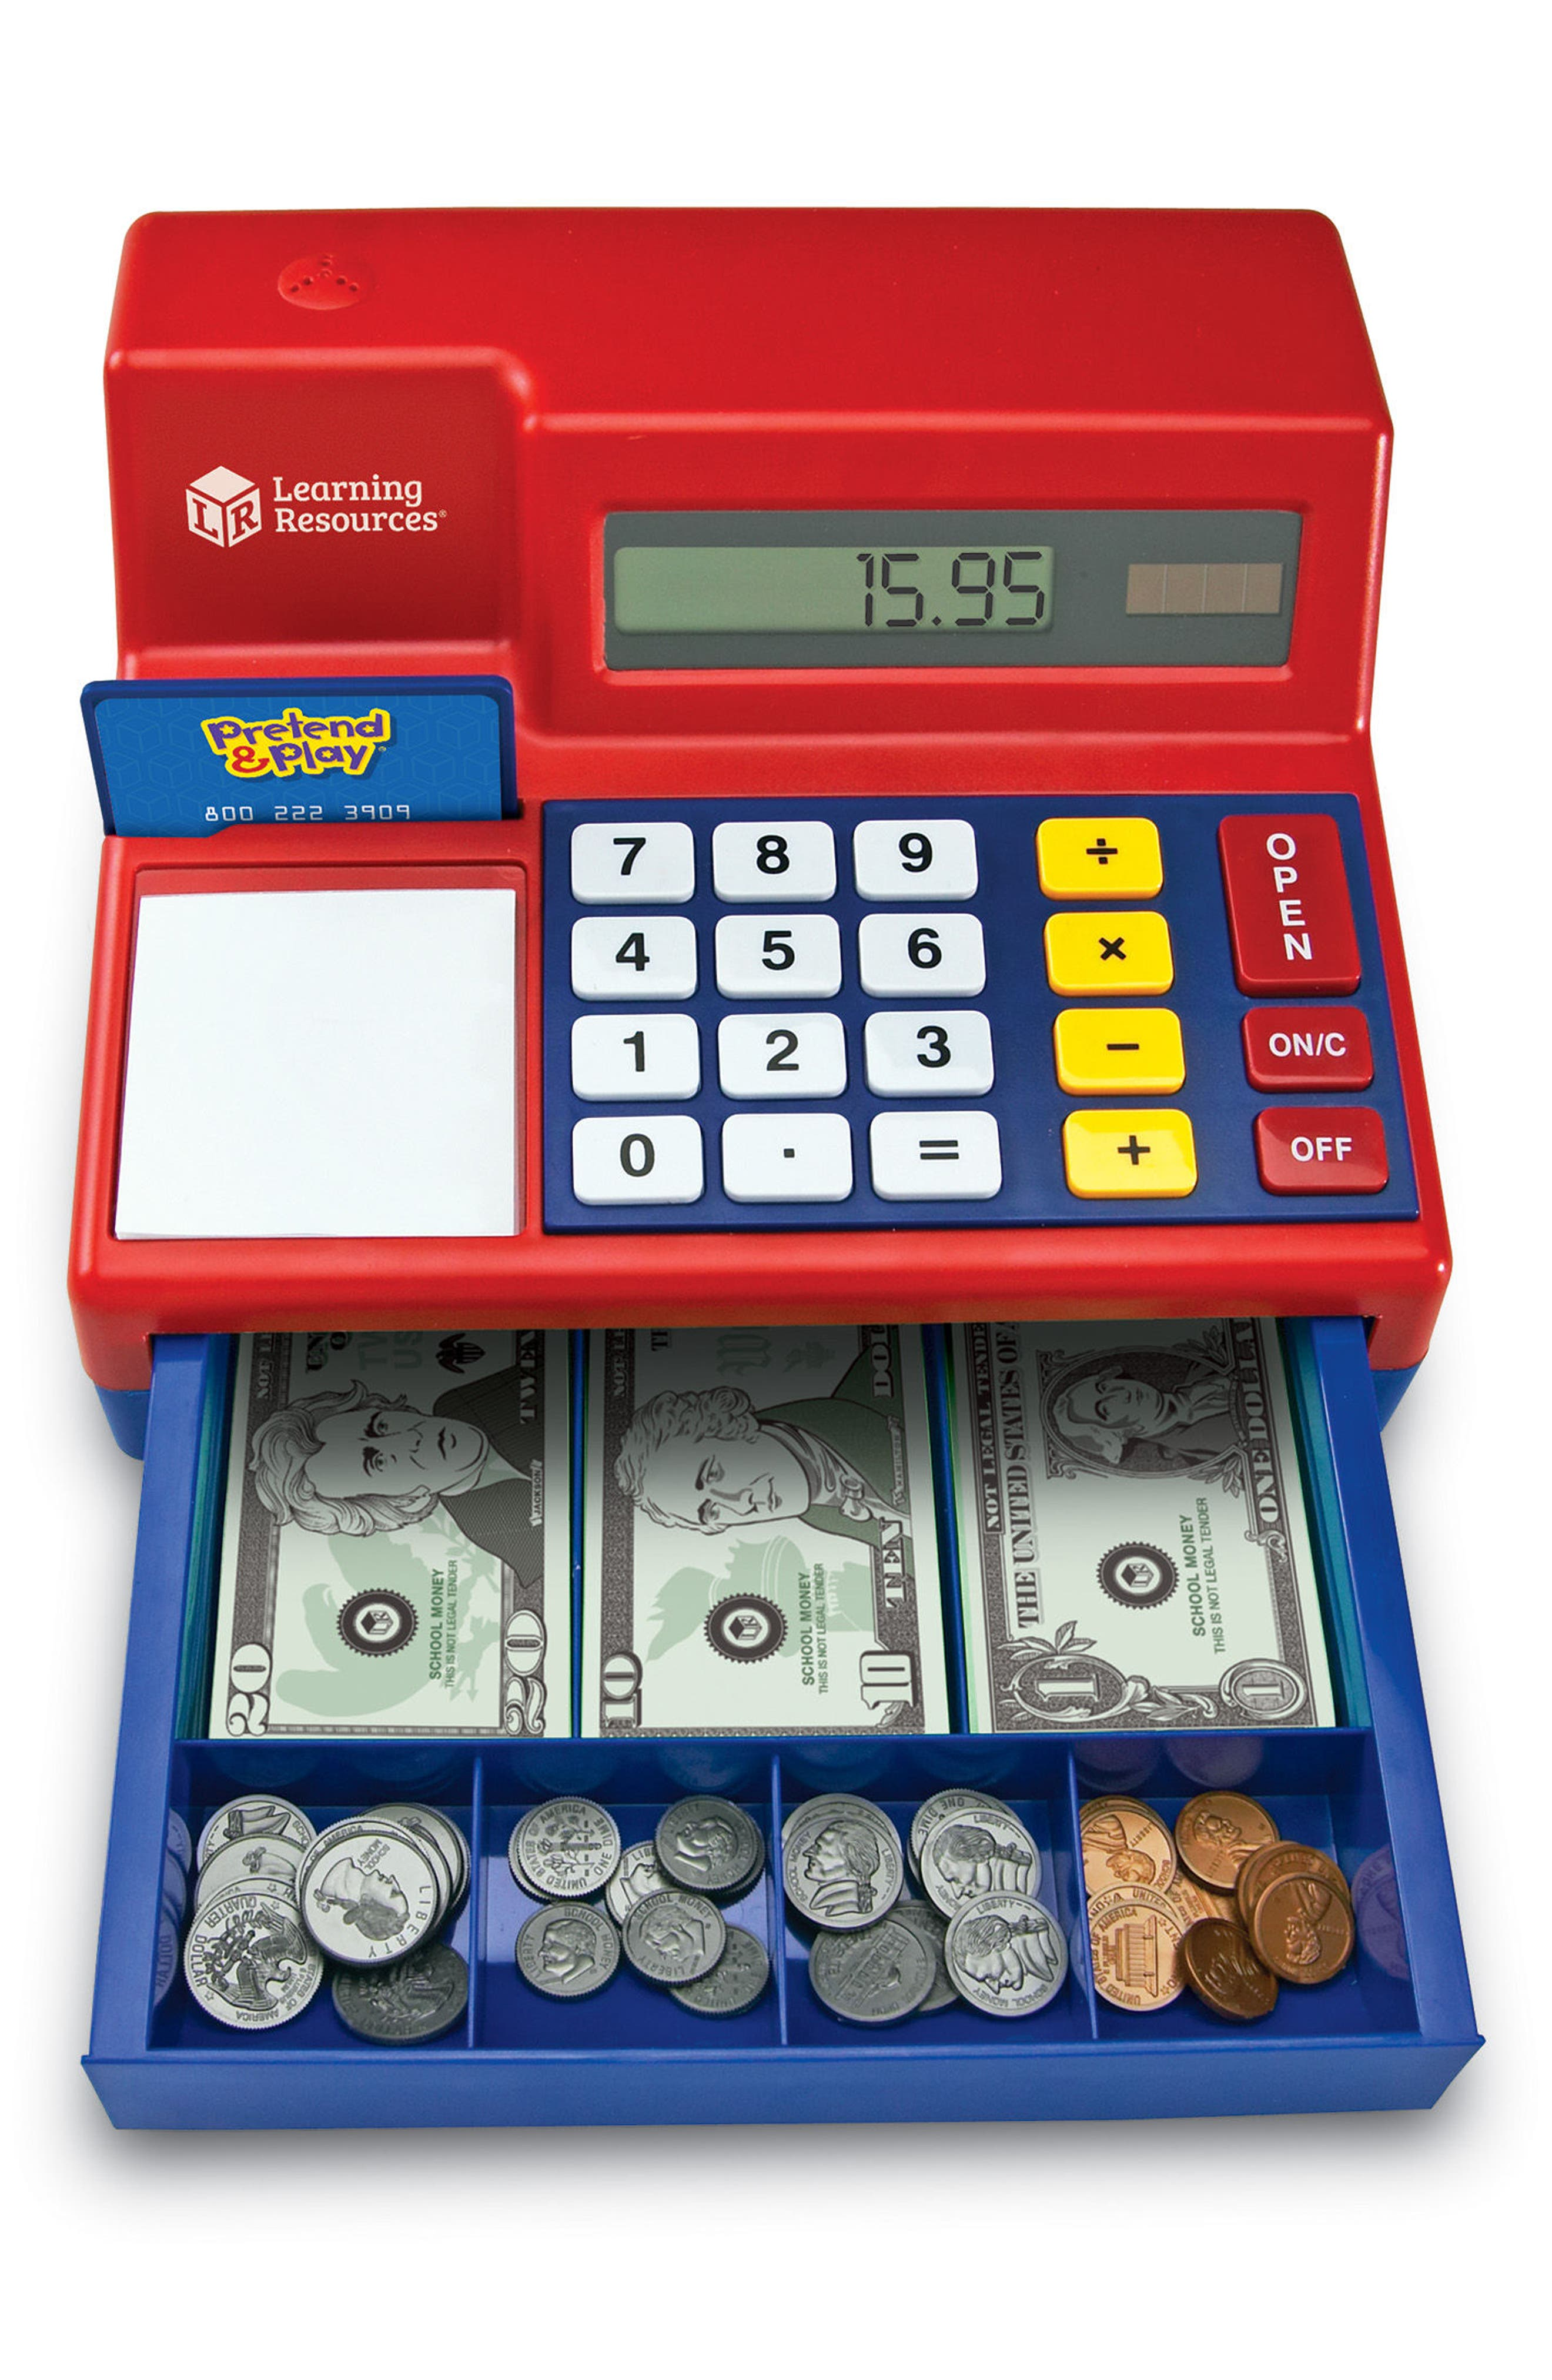 73-Piece Calculator Cash Register Toy,                             Alternate thumbnail 2, color,                             Red